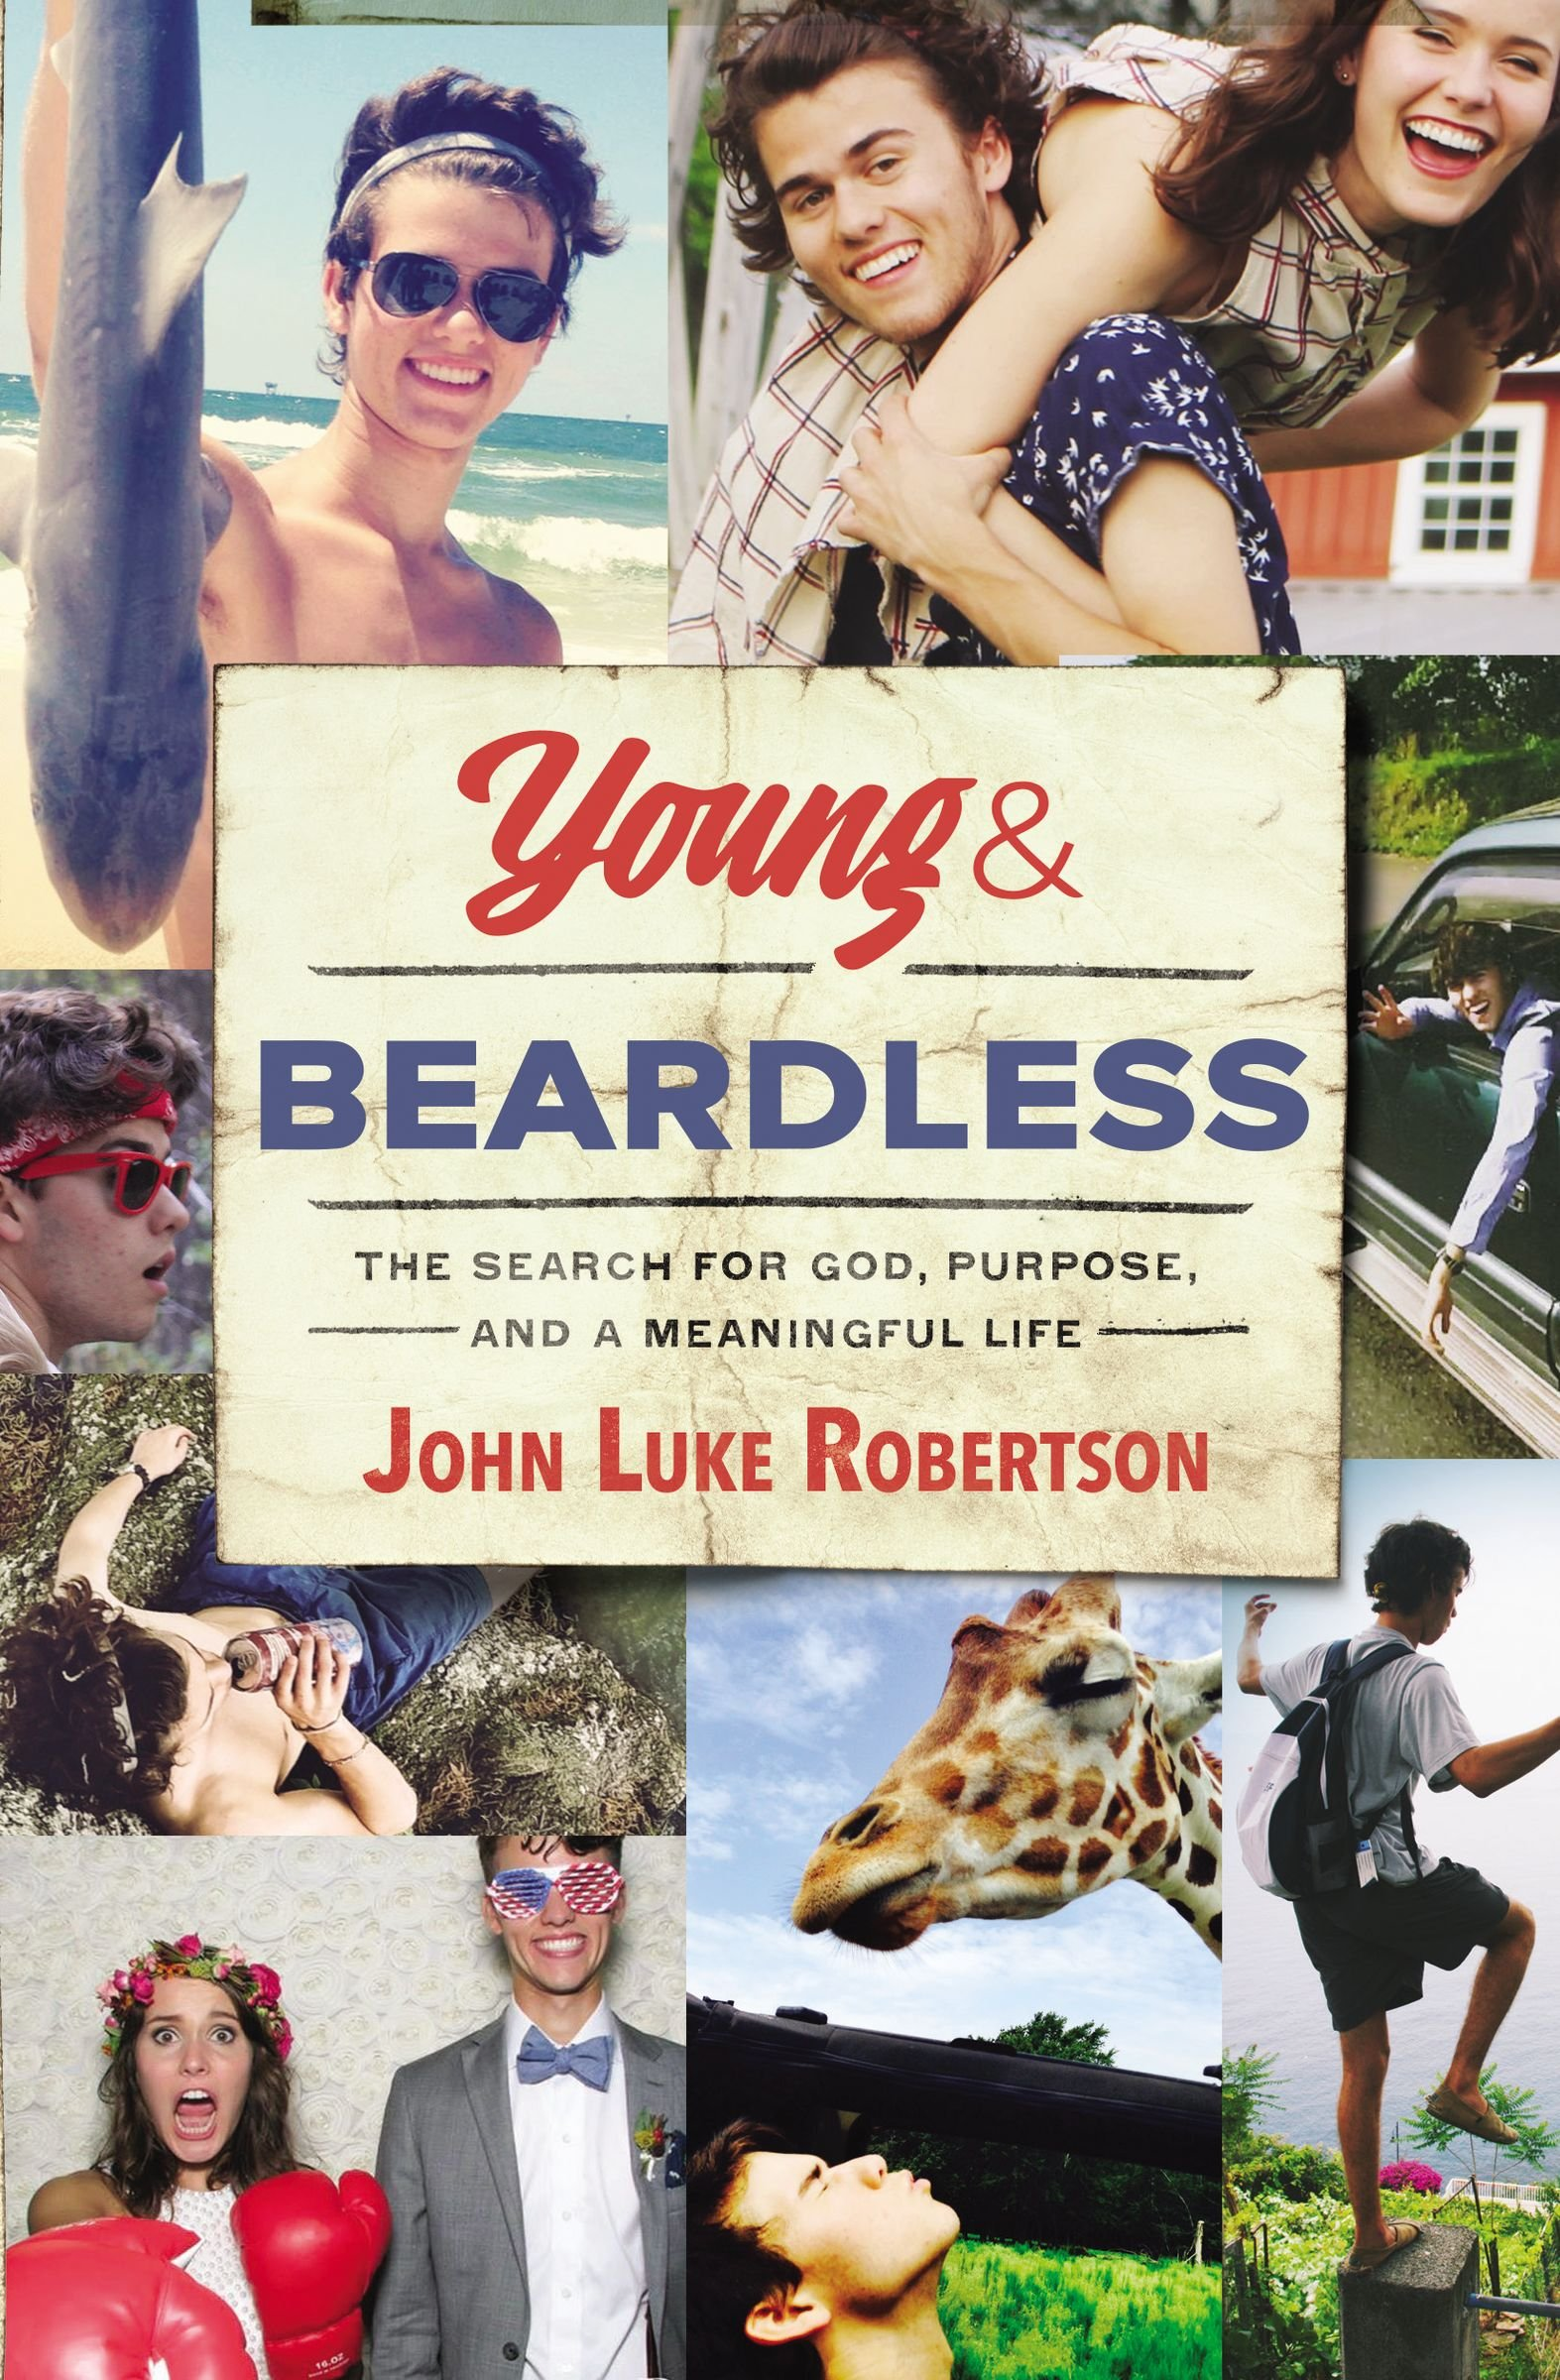 Young and Beardless: The Search for God, Purpose, and a Meaningful Life